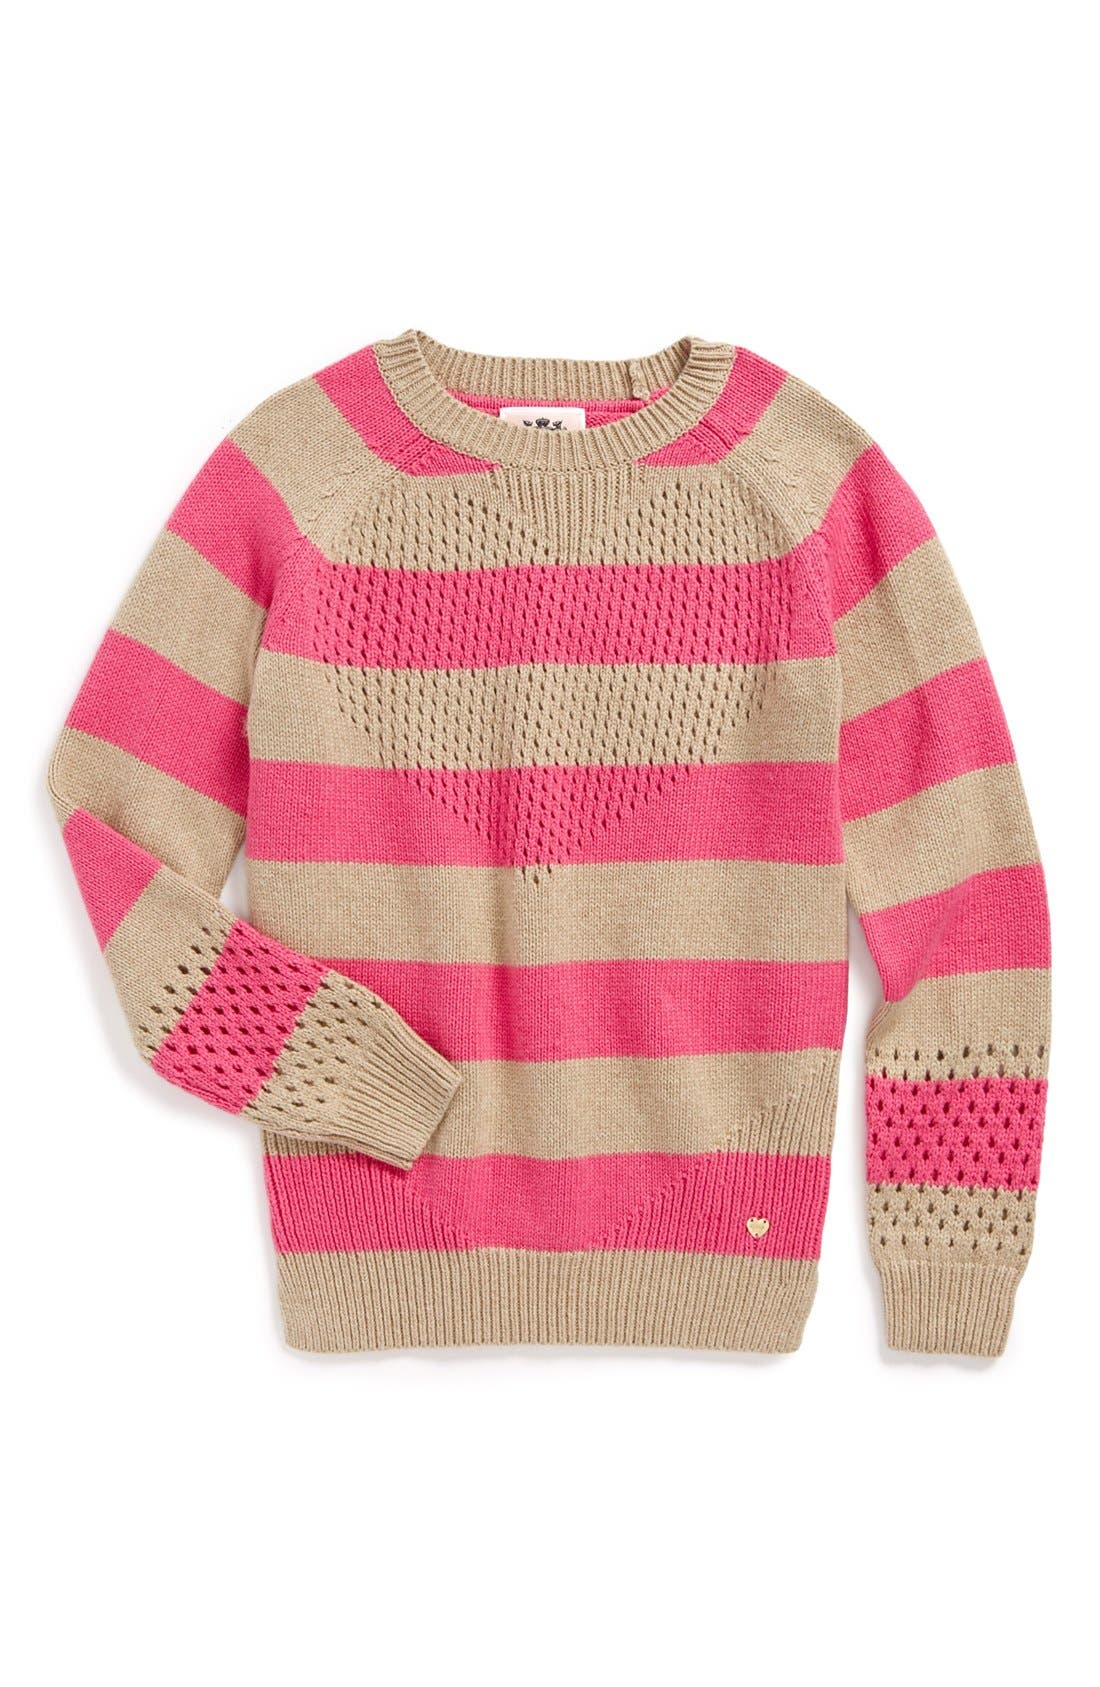 Main Image - Juicy Couture 'Pointelle Heart' Pullover (Toddler Girls, Little Girls & Big Girls)